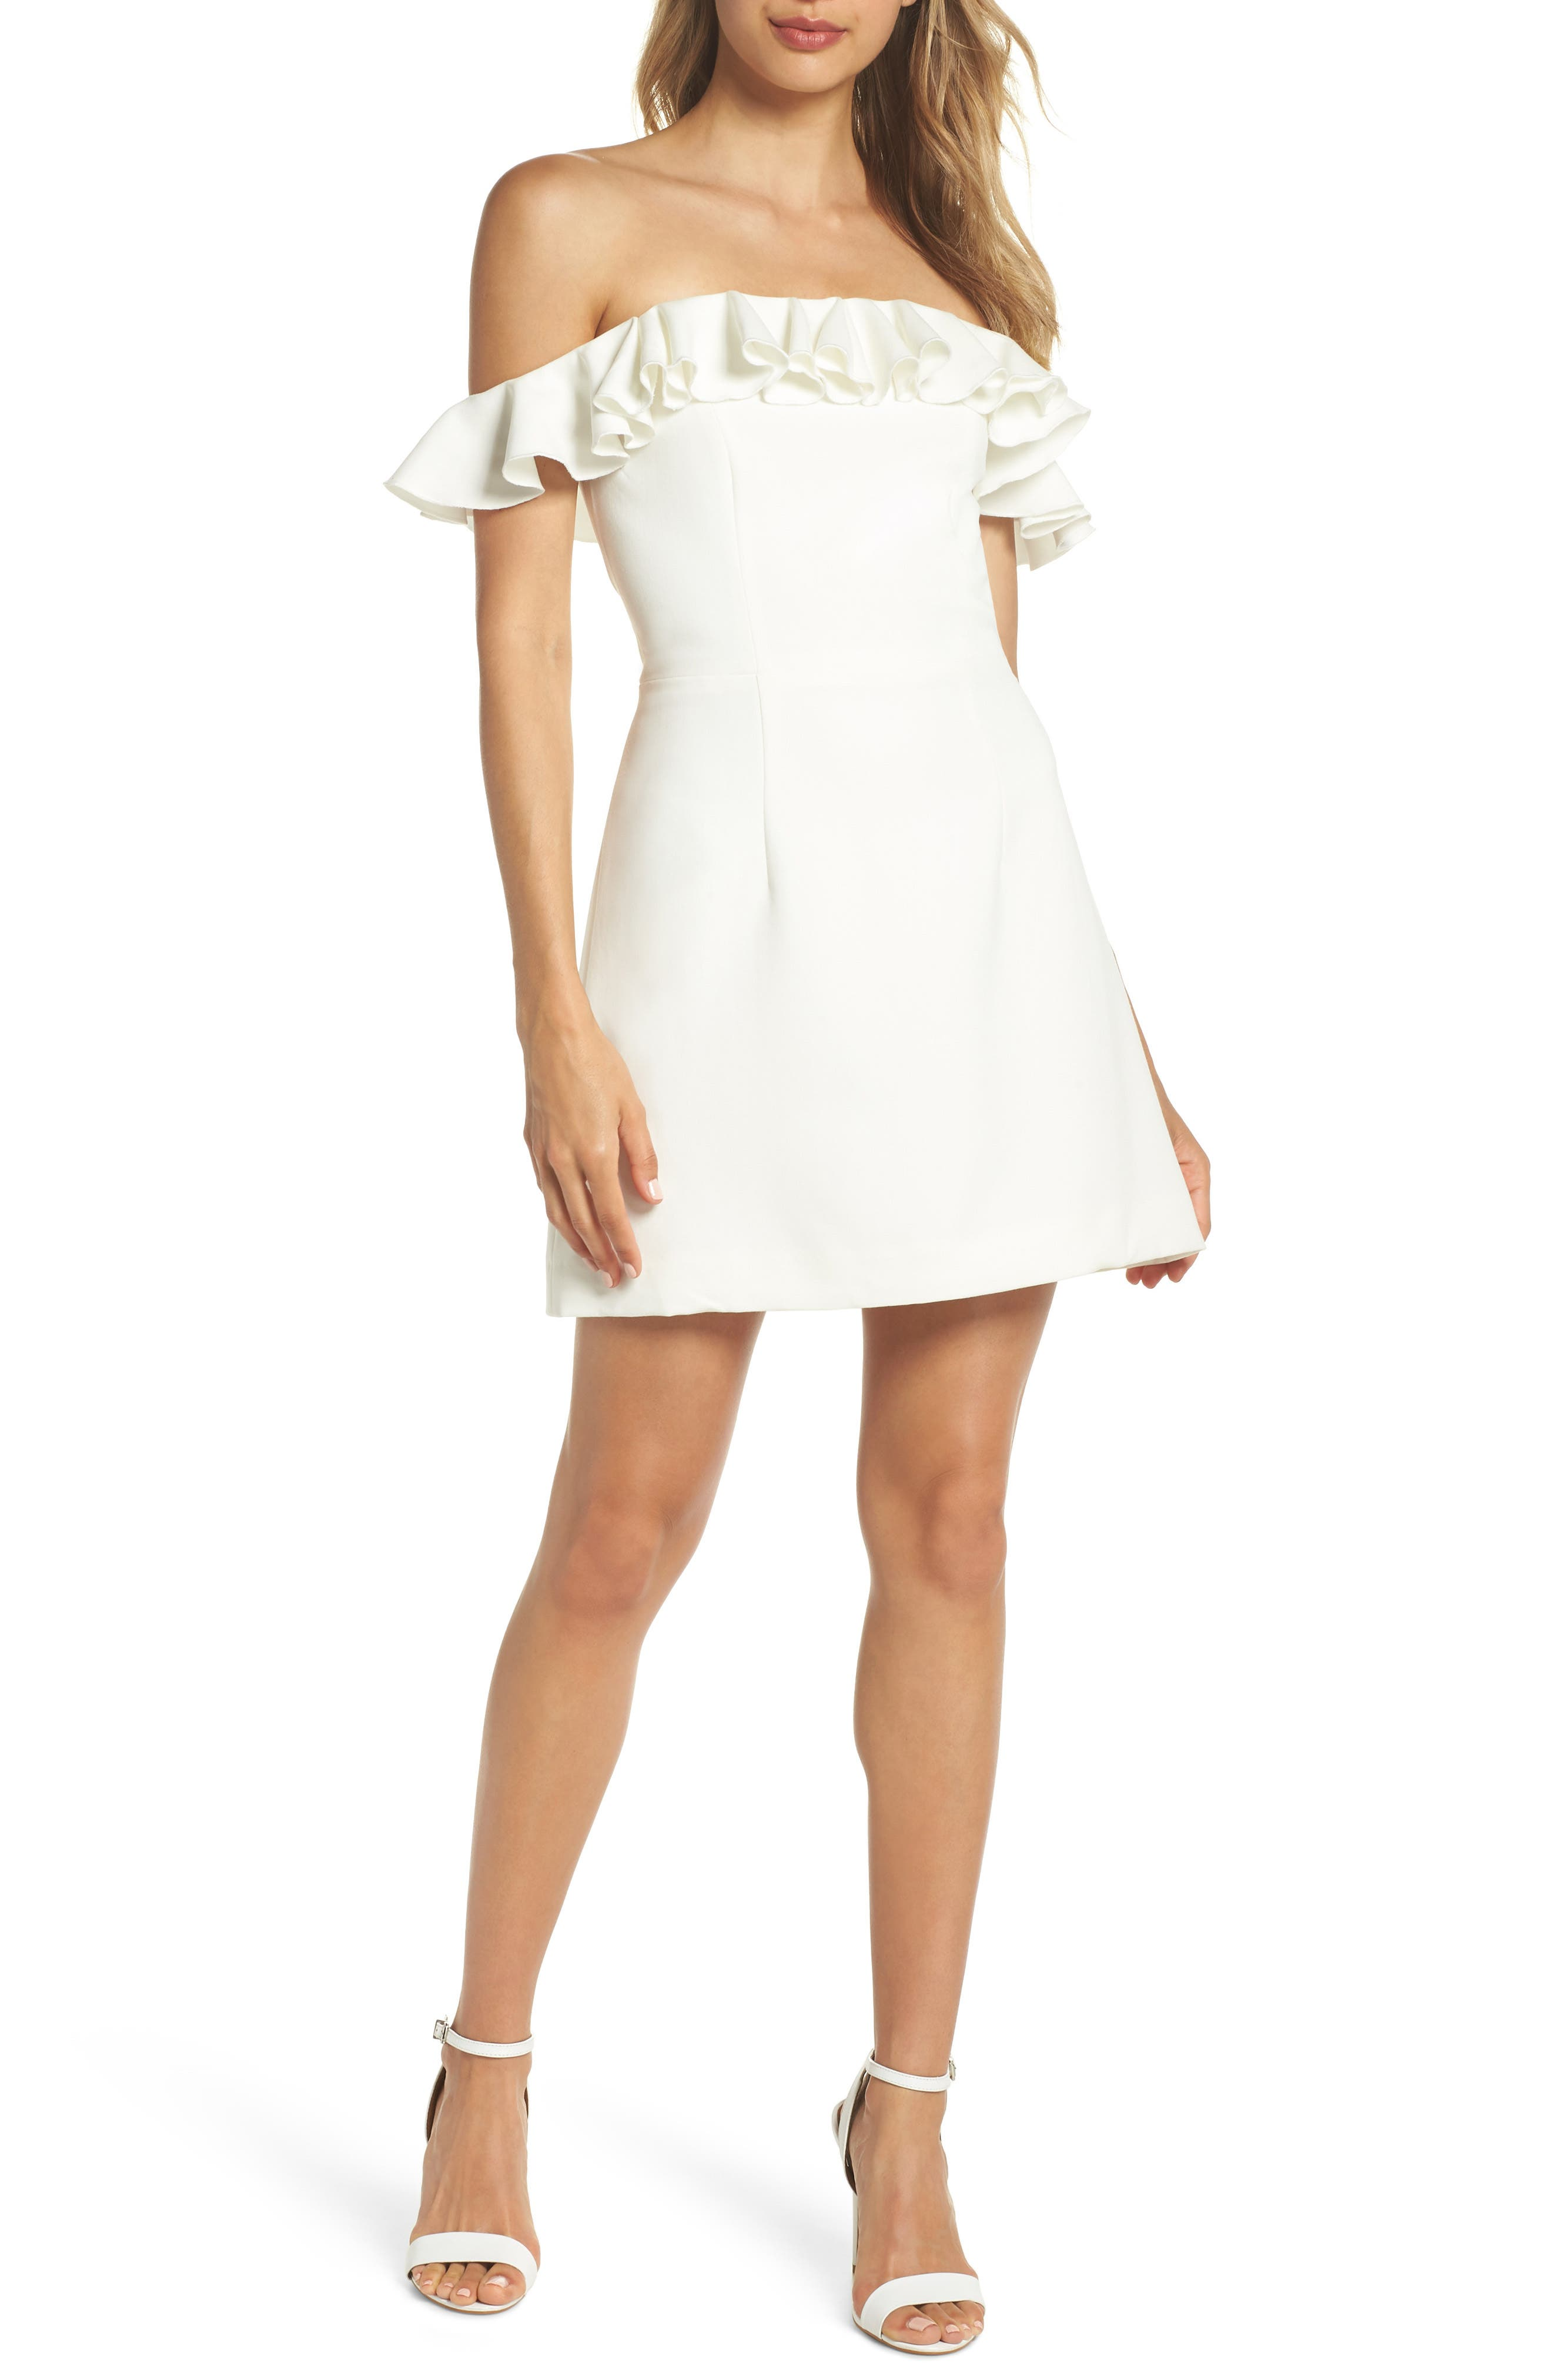 French Connection Whisper Light Off The Shoulder Ruffle Dress, White